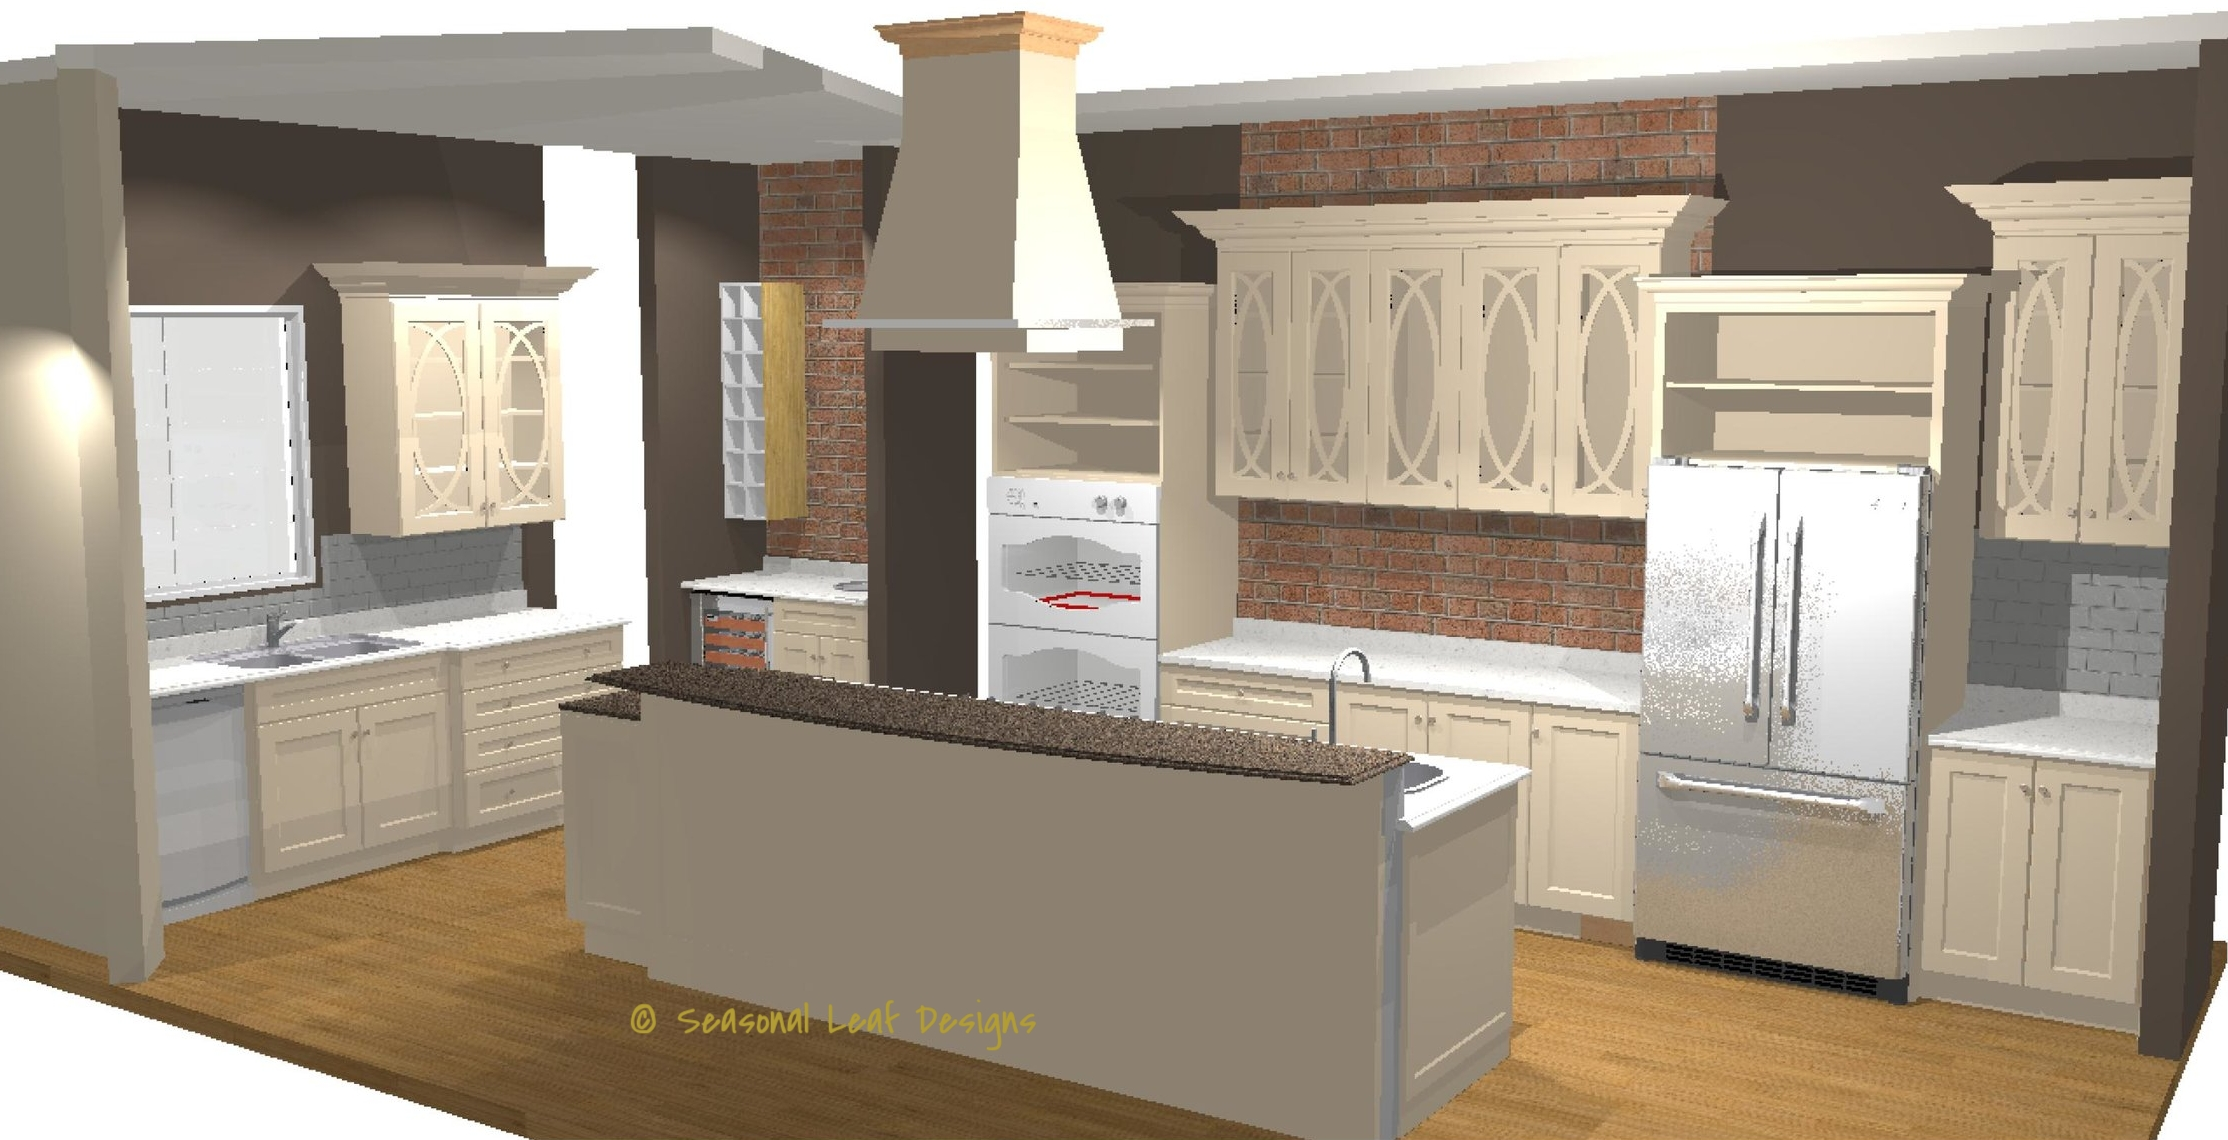 JV Kitchen 3D View 3